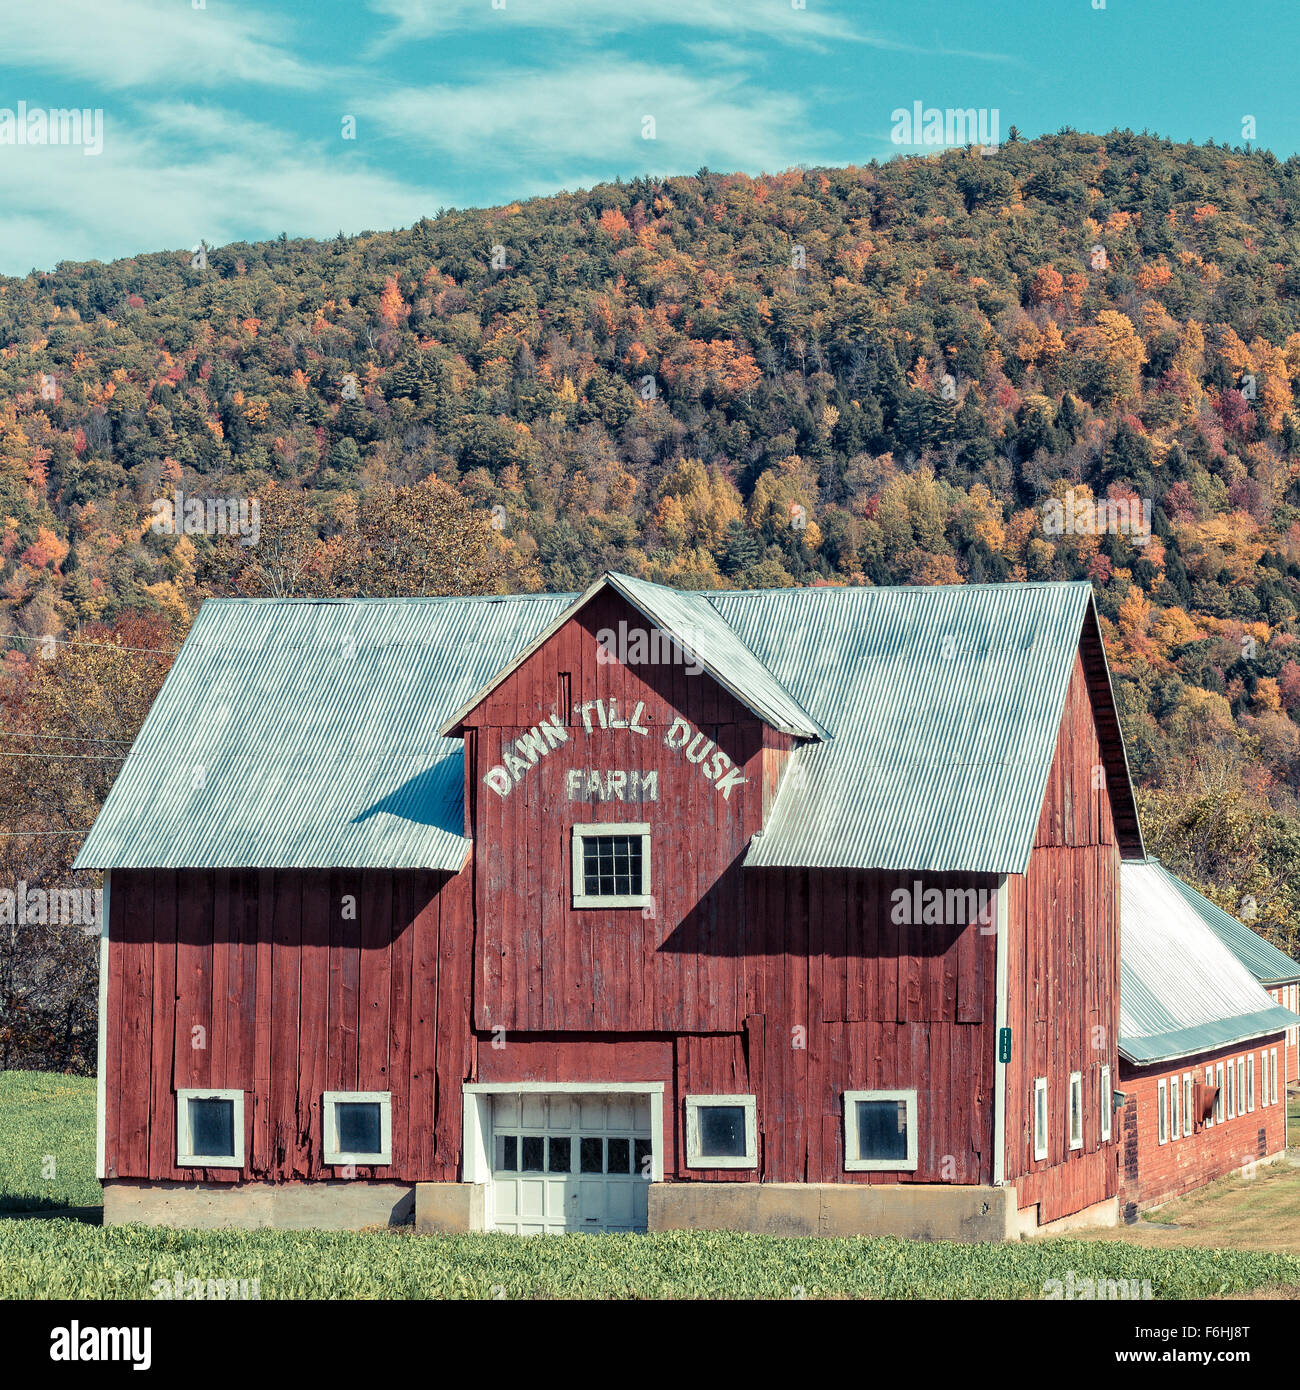 Old Red Barn In Vermont With The Words Dawn Till Dusk Farm Painted On Side